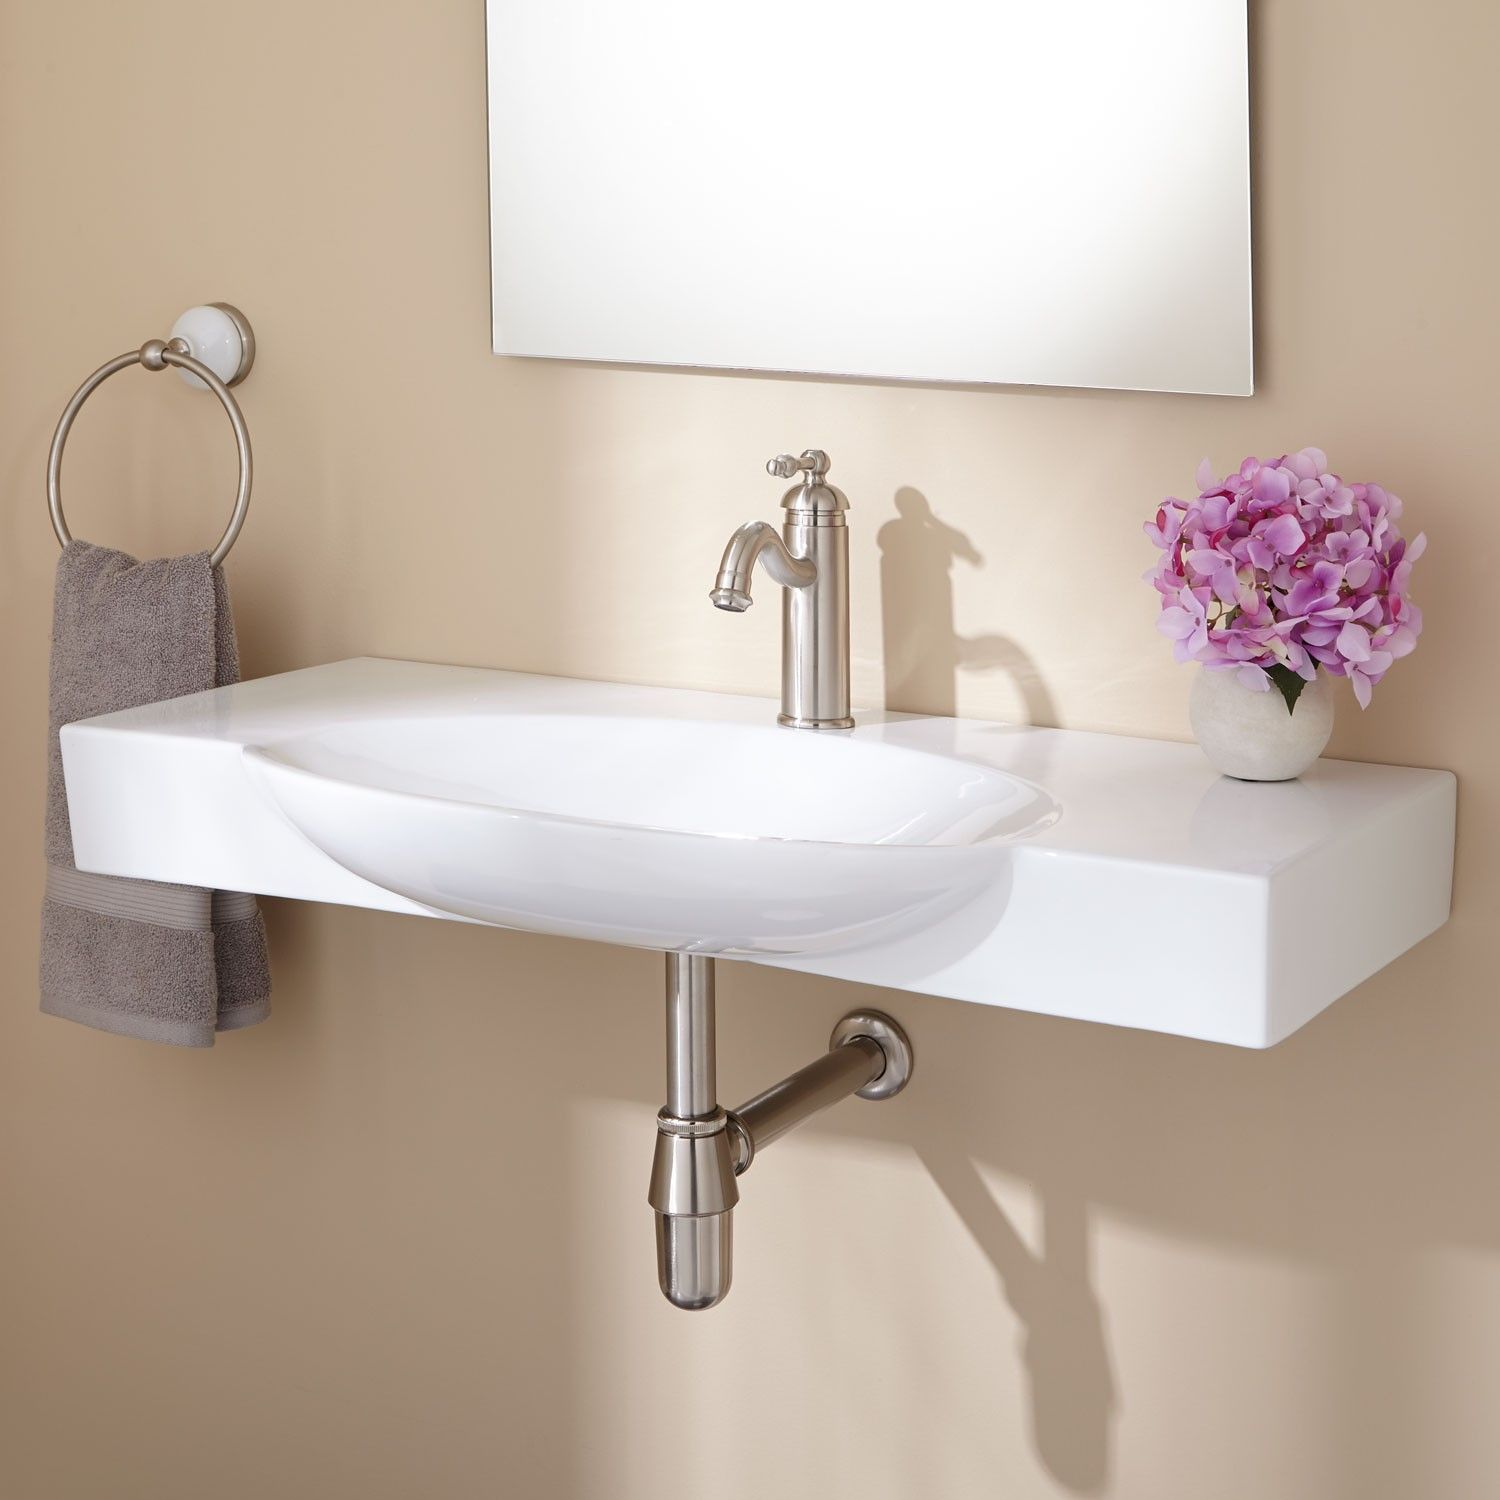 hiott wall mount bathroom sink bathroom sinks bathroom on wall mount id=65514